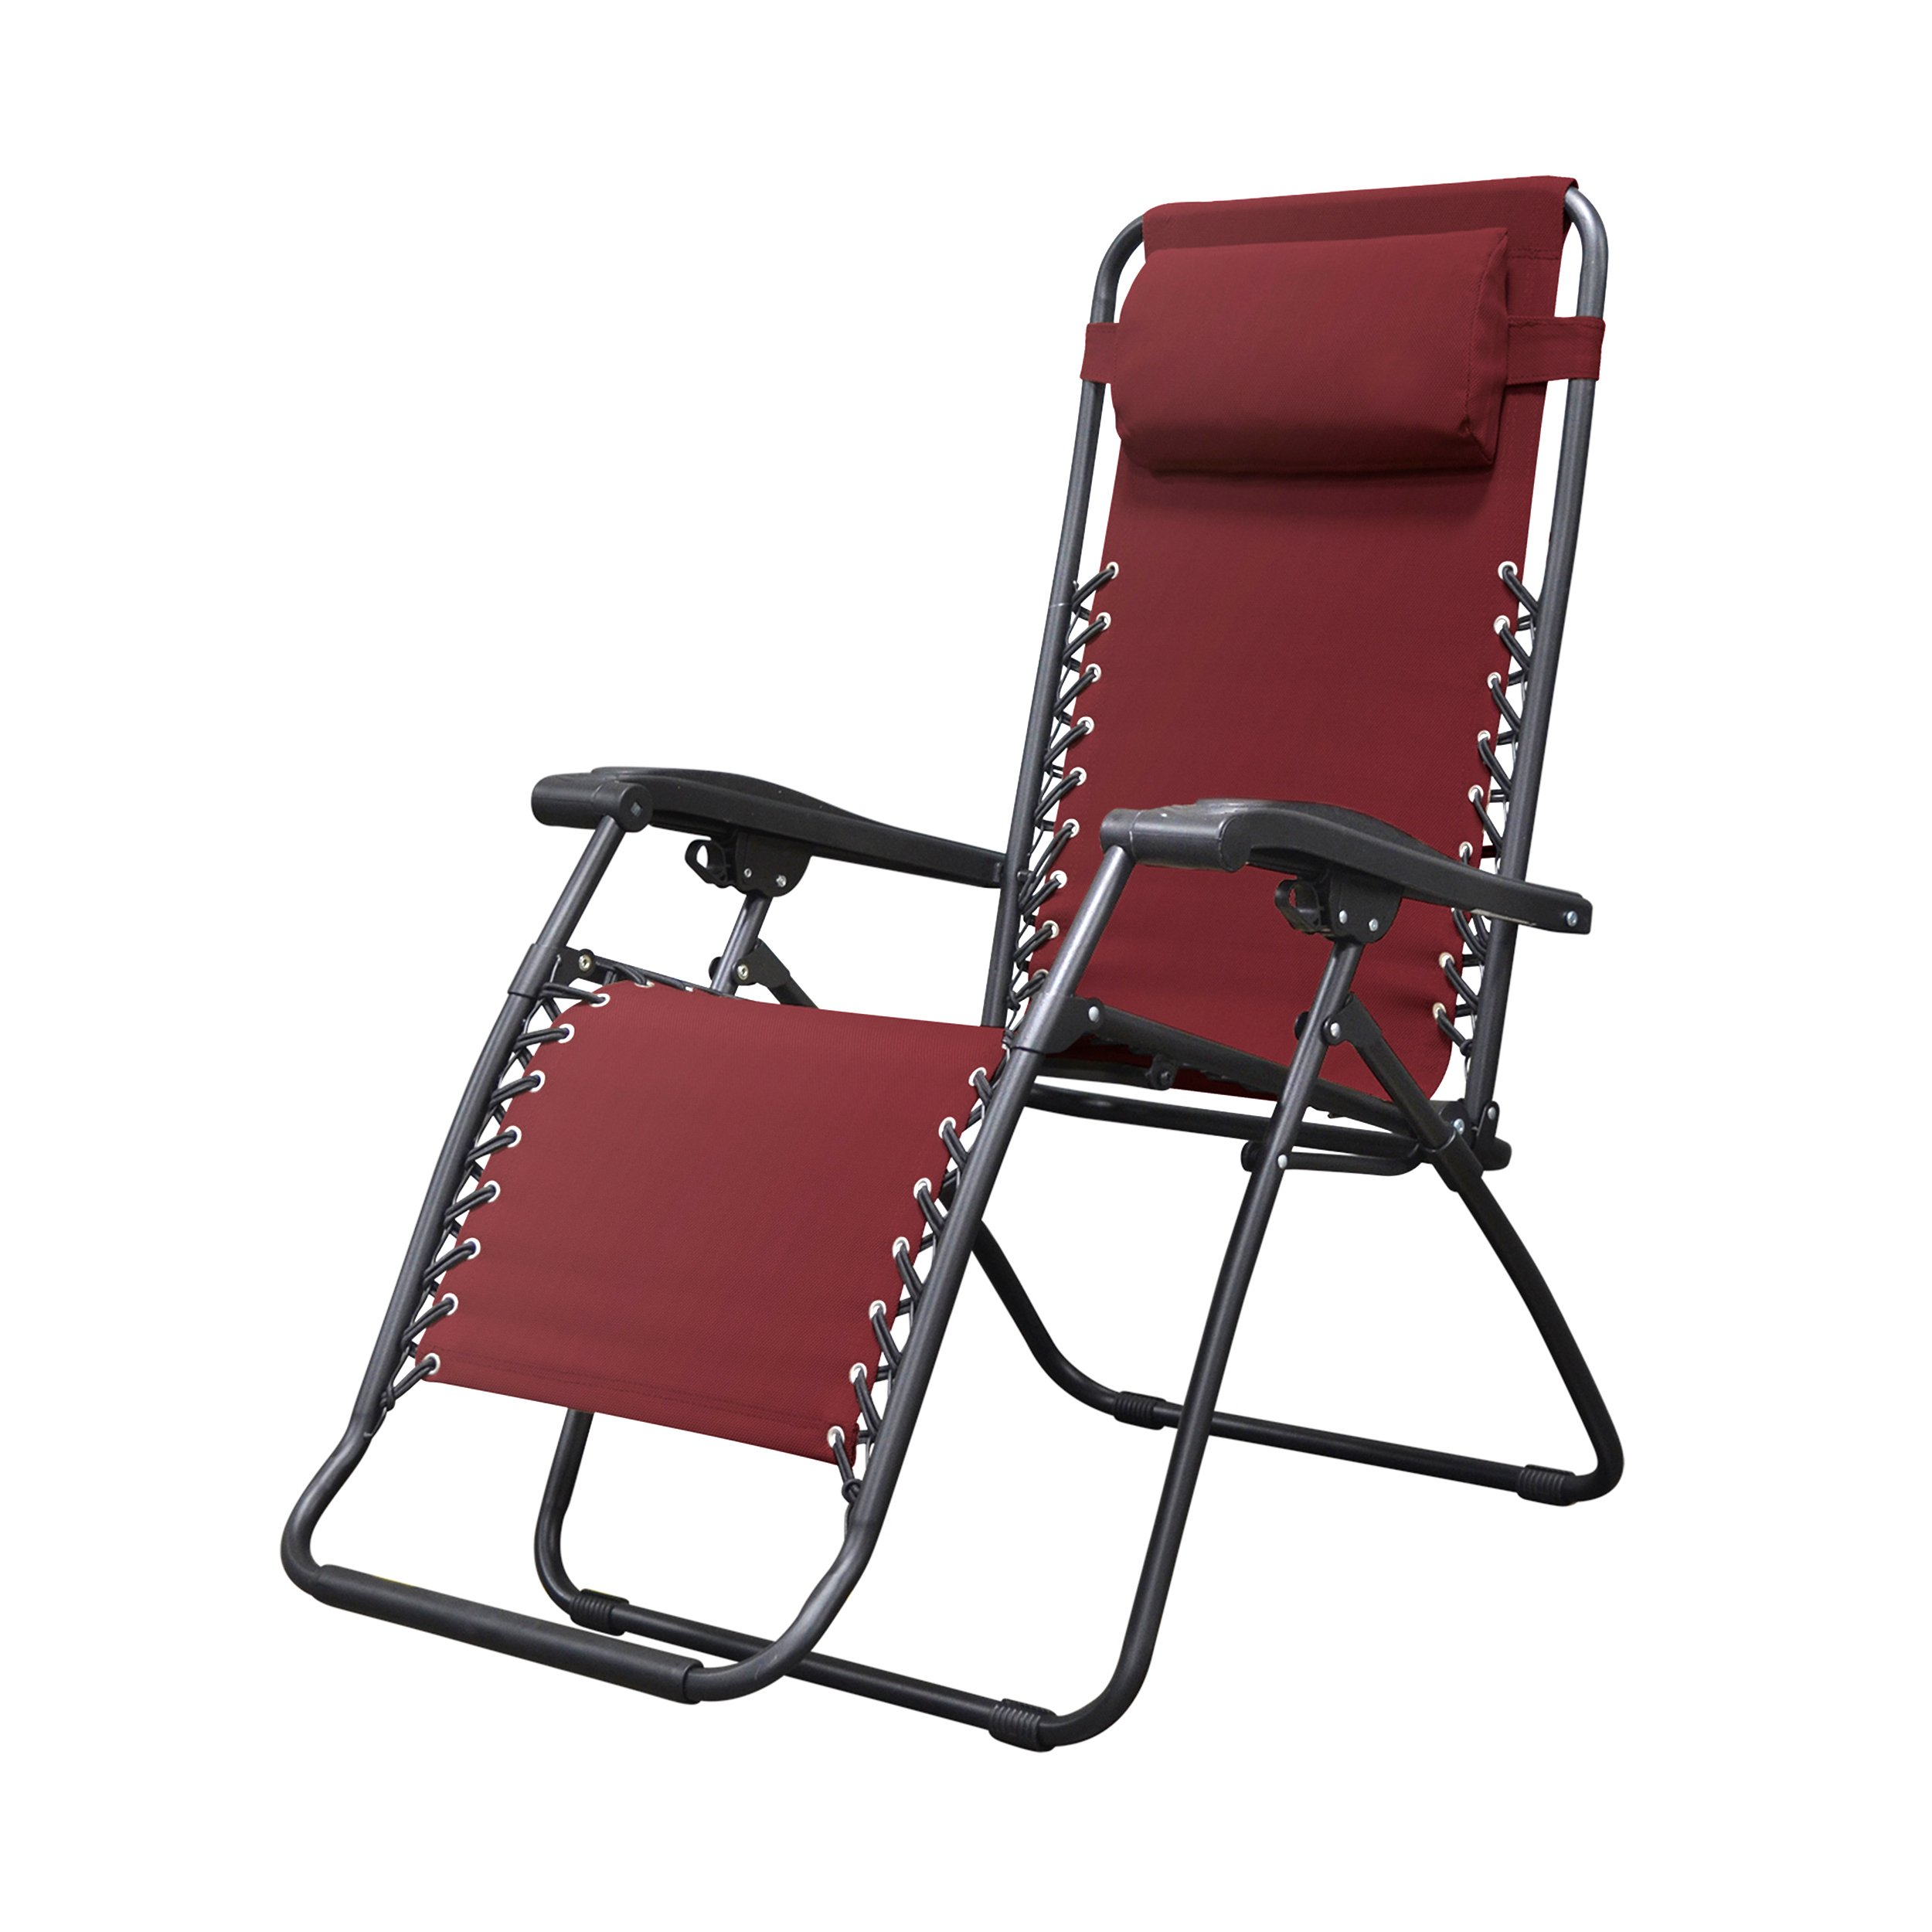 Caravan Sports Infinity Zero Gravity Chair, Burgundy by Caravan Sports